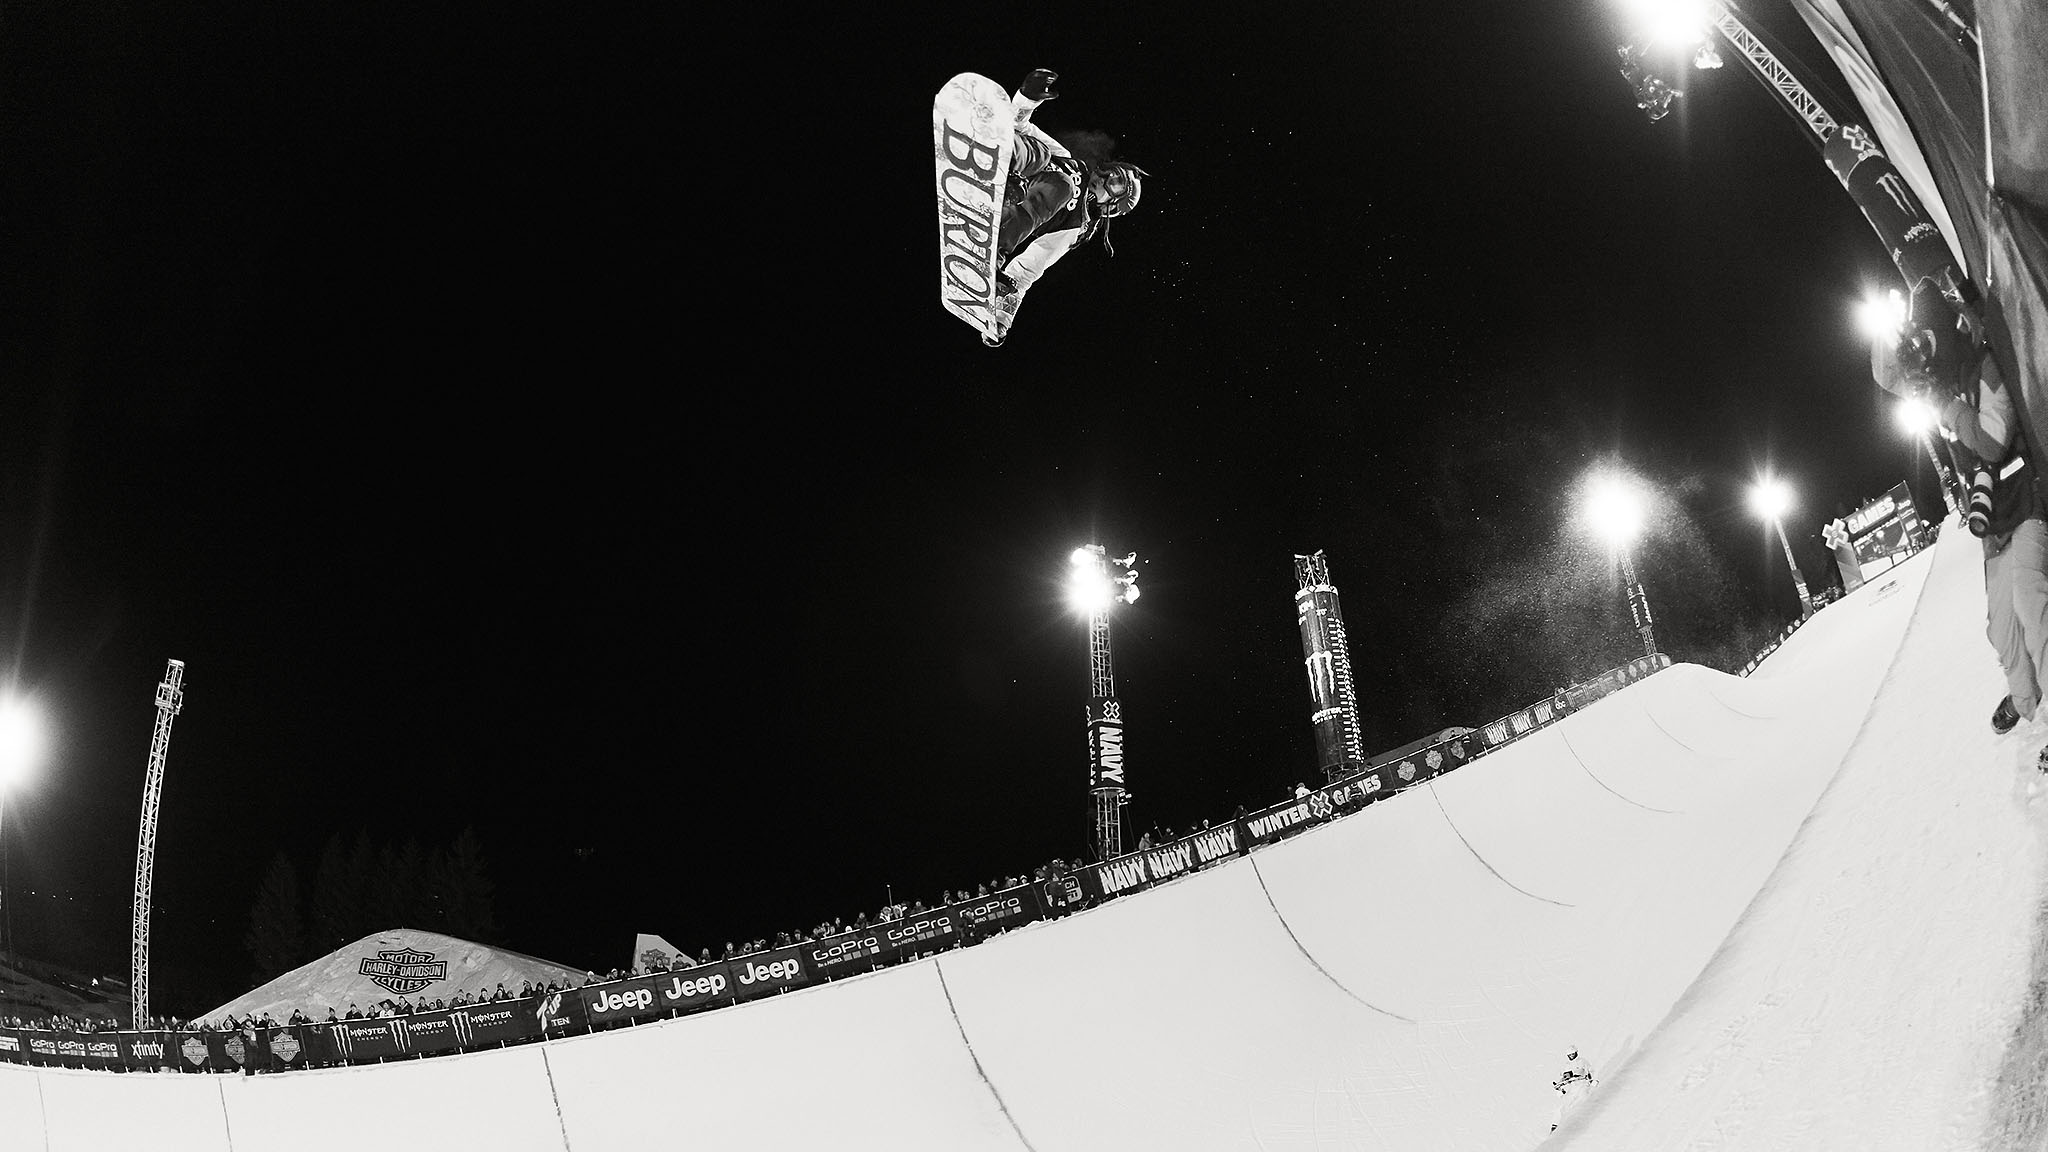 The Real Cost Women's Snowboard SuperPipe